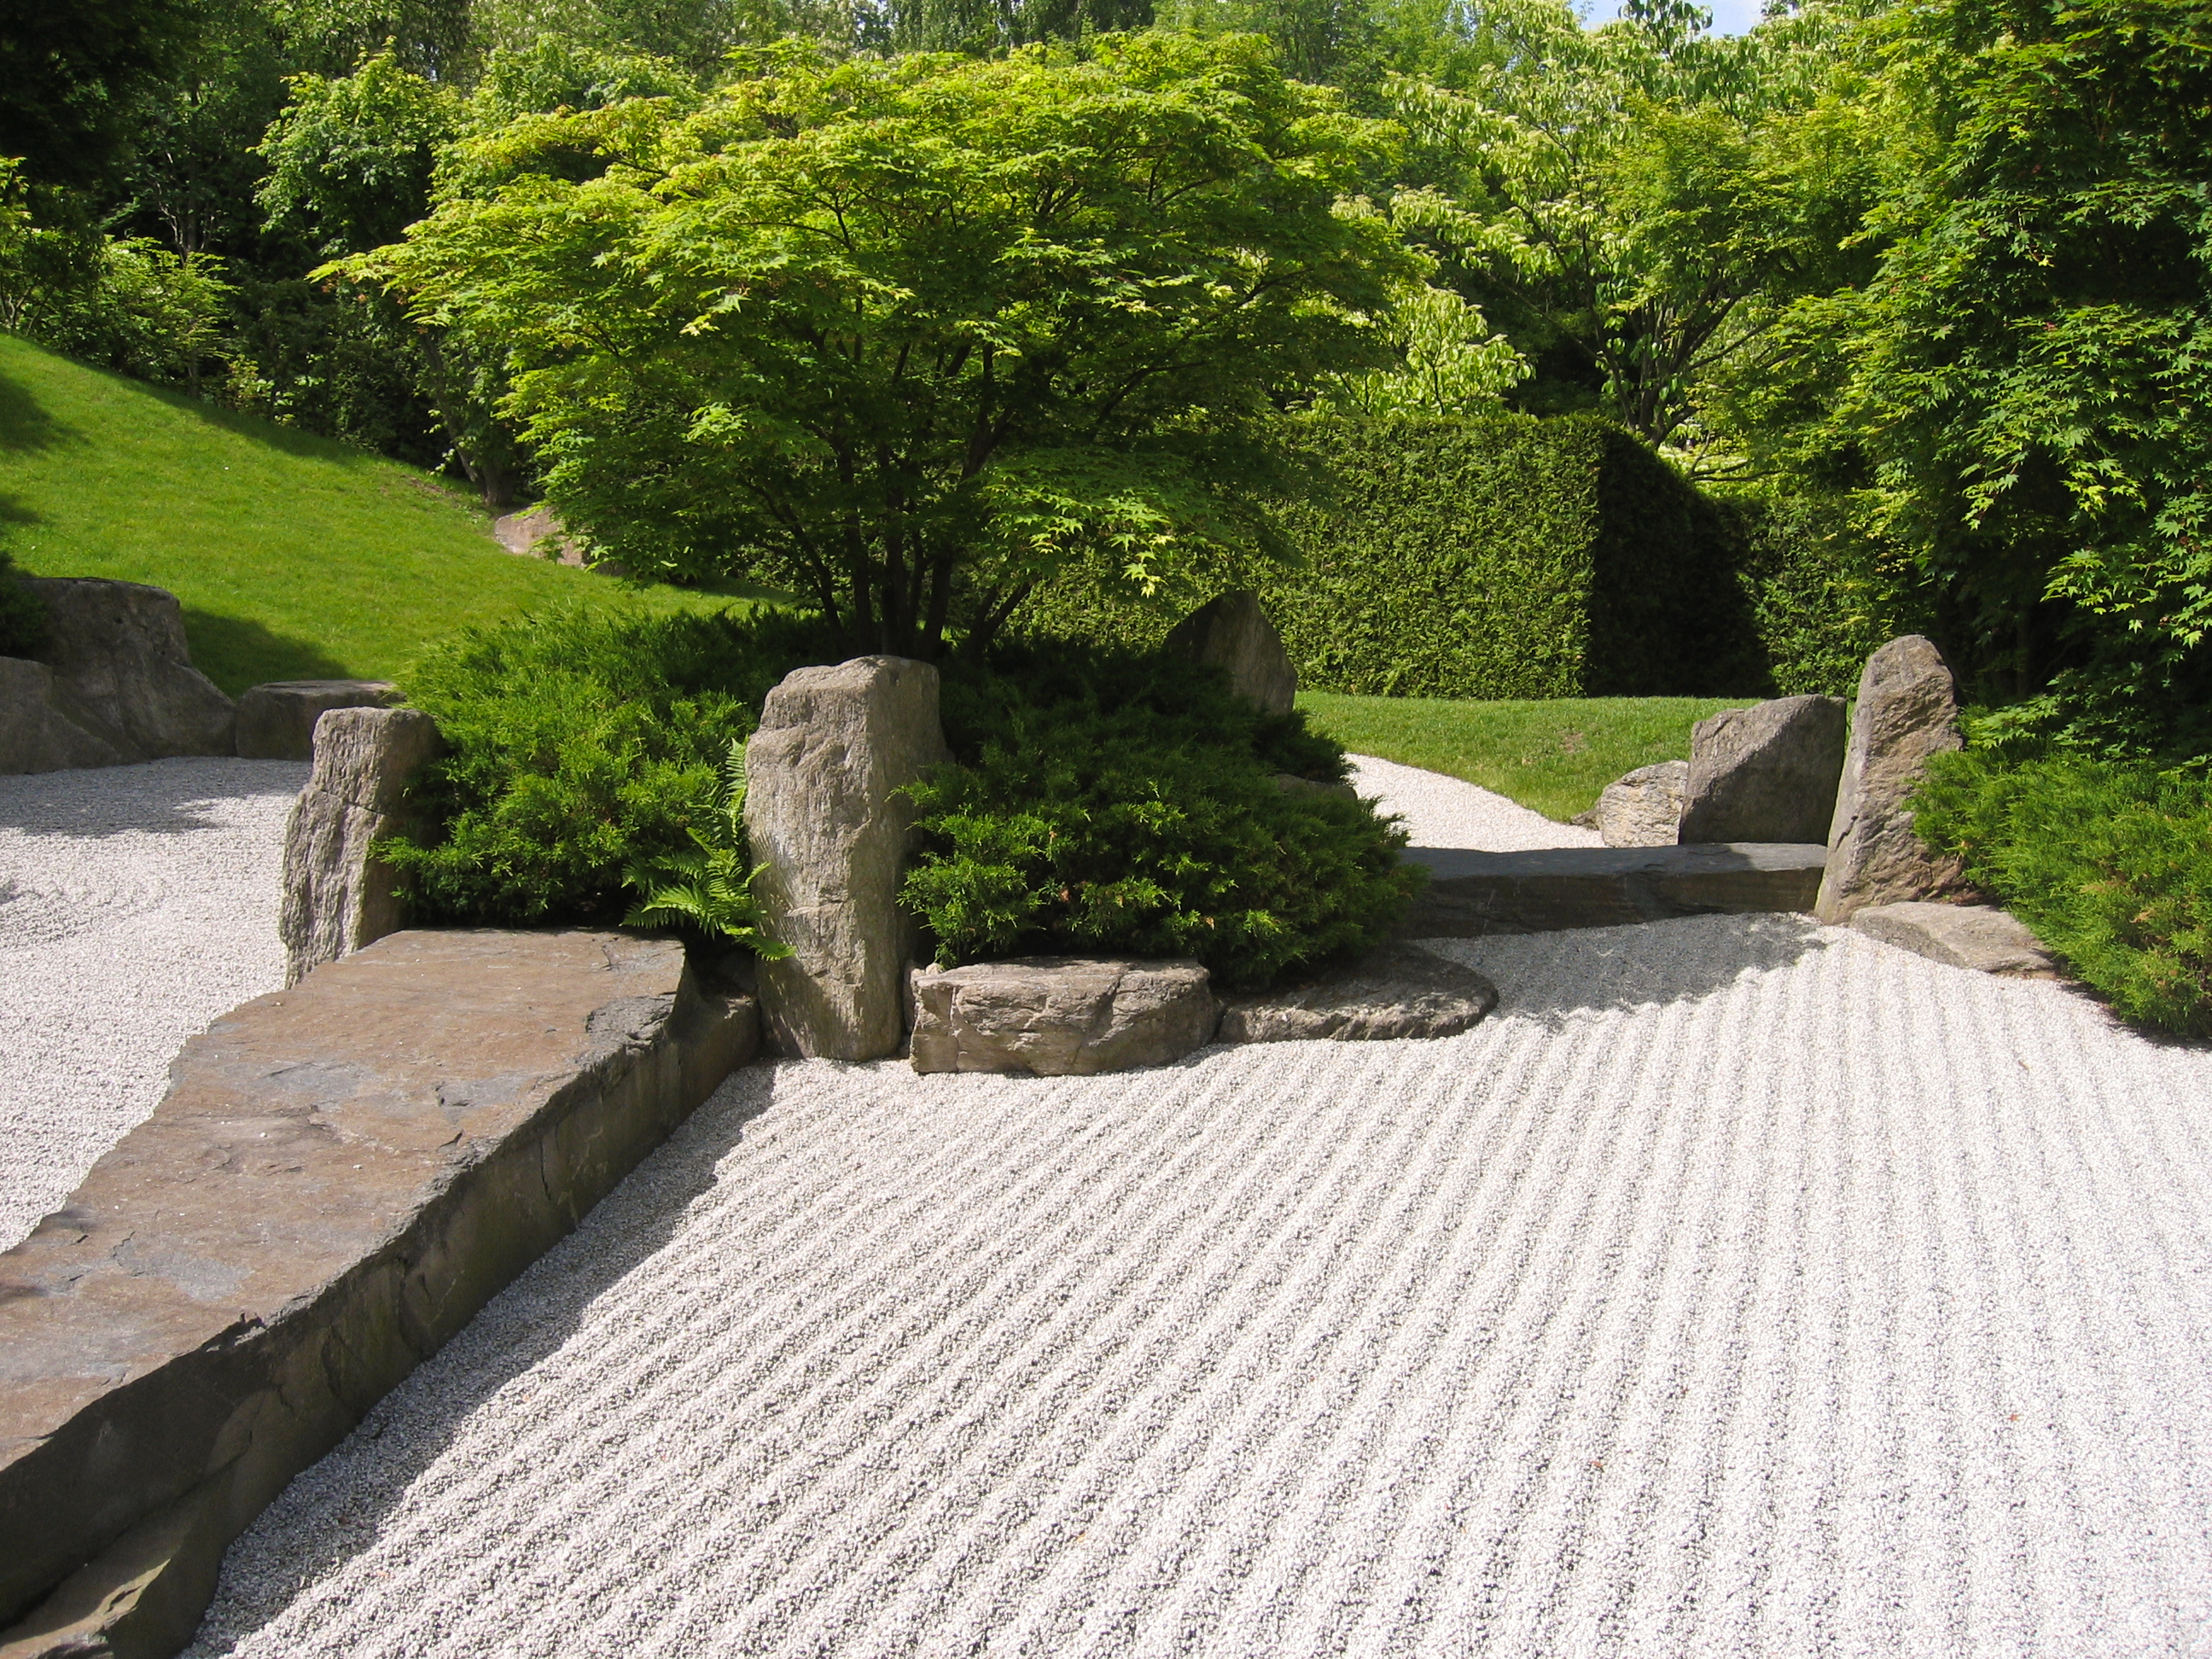 Garden design common garden stylesse landscape for Japanese landscaping ideas